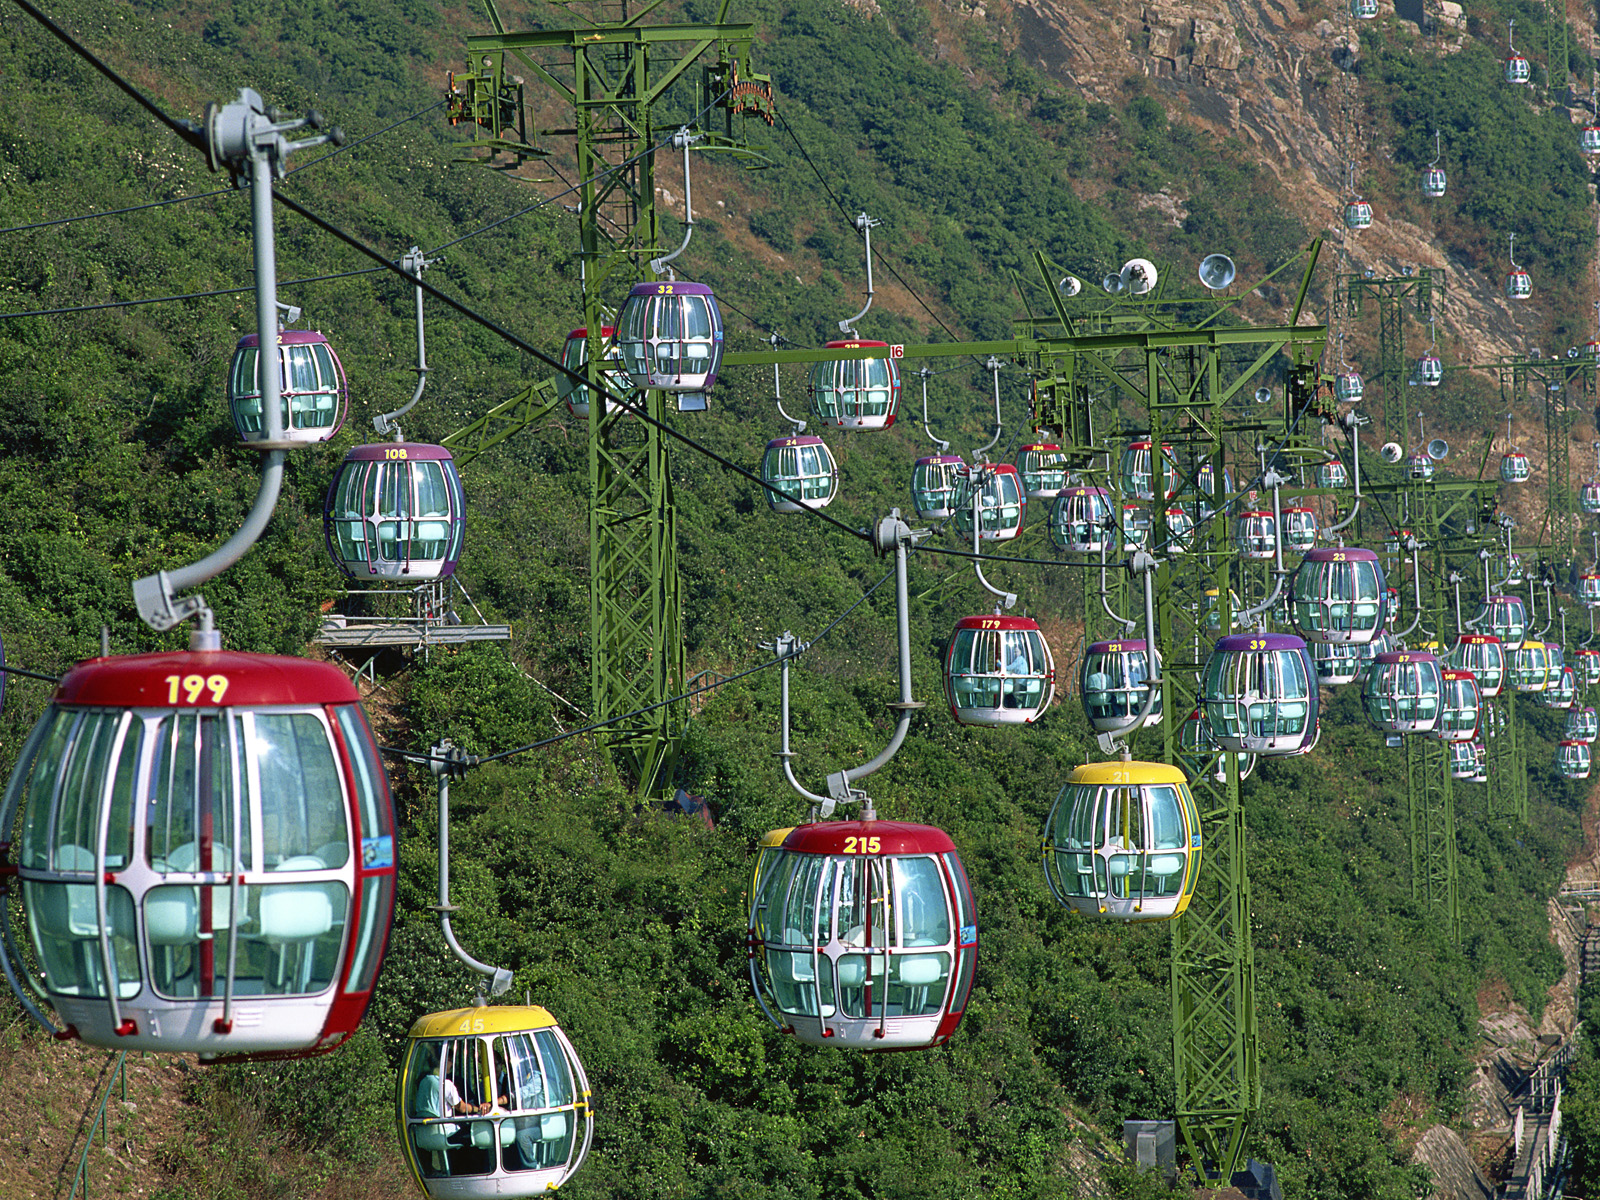 China,Hong Kong,Ocean Park,Gondolas